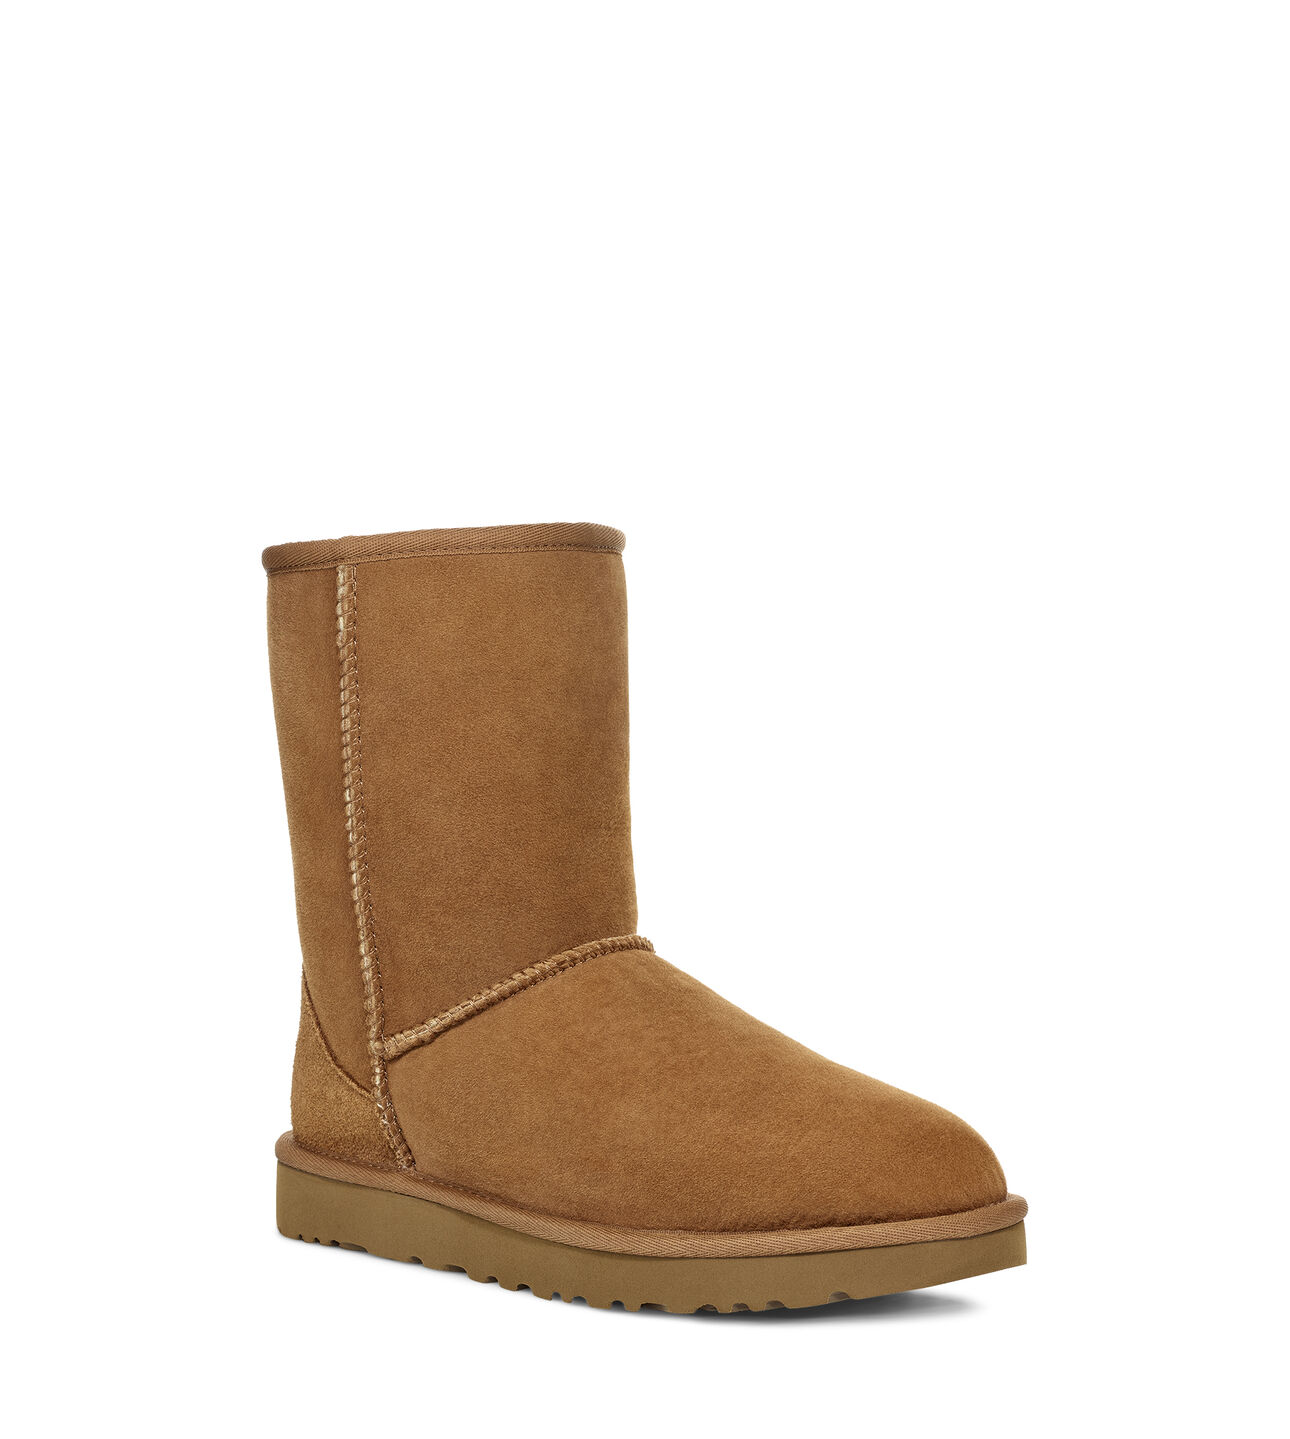 Buy UGG Women's Shaye Rain Boot and other Rain Footwear at orimono.ga Our wide selection is eligible for free shipping and free returns.